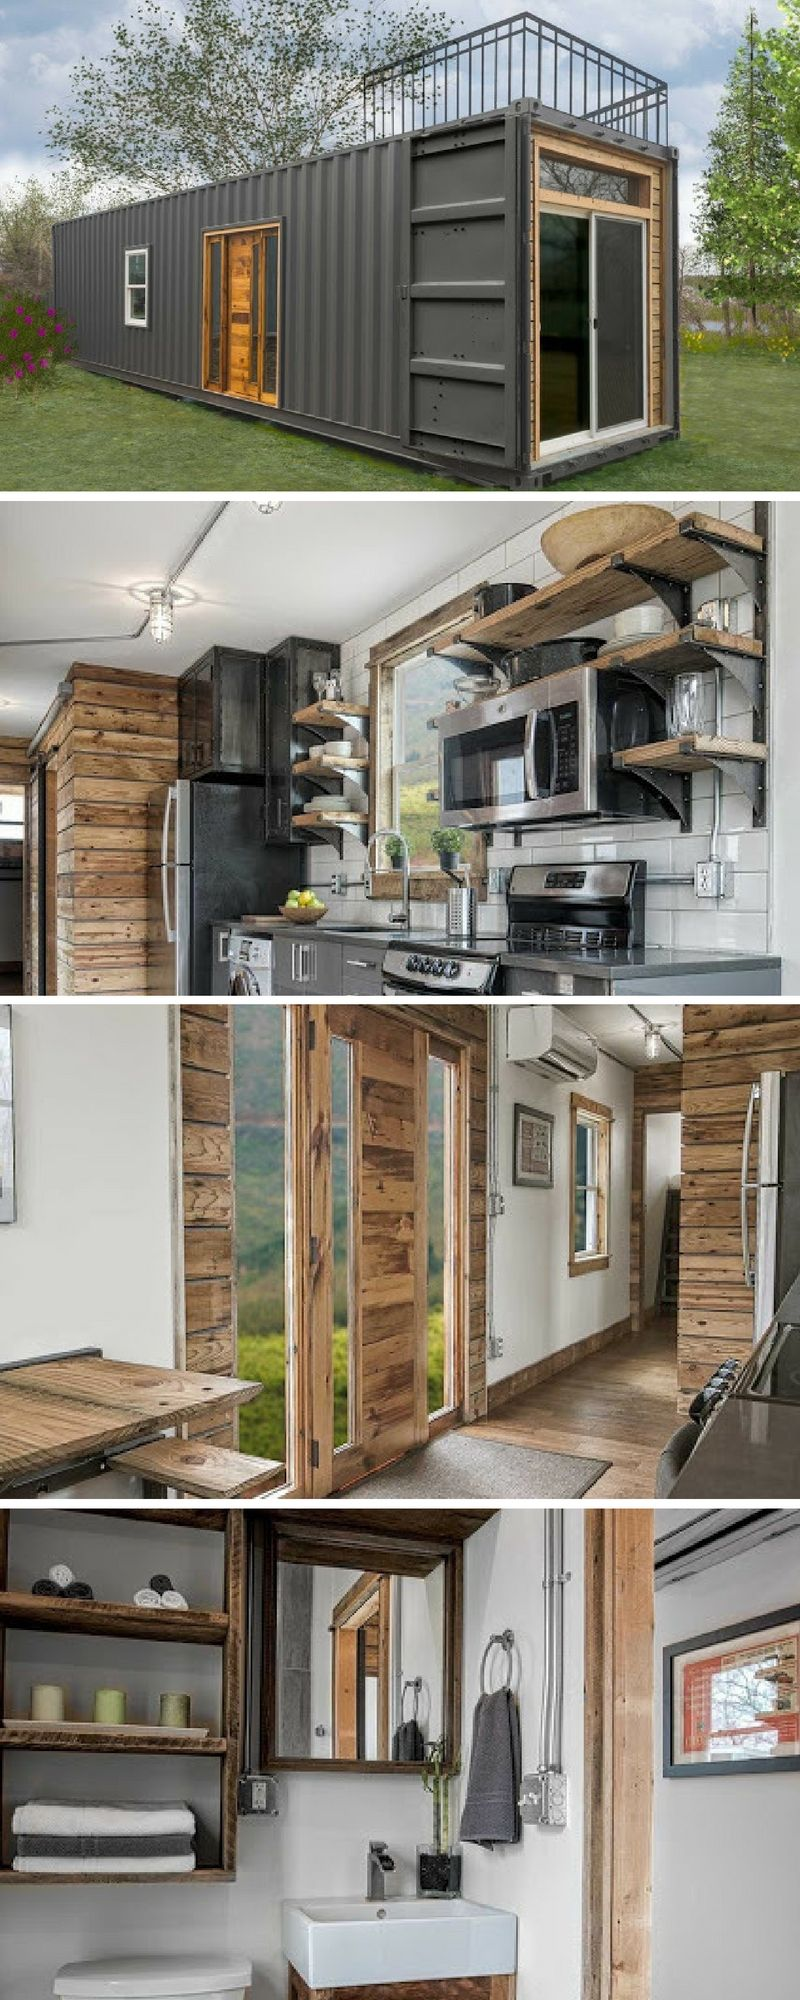 Best Kitchen Gallery: Industrial Rustic Container 1b 1b Tiny Home Shipping Container of Rustic Shipping Container Homes on rachelxblog.com